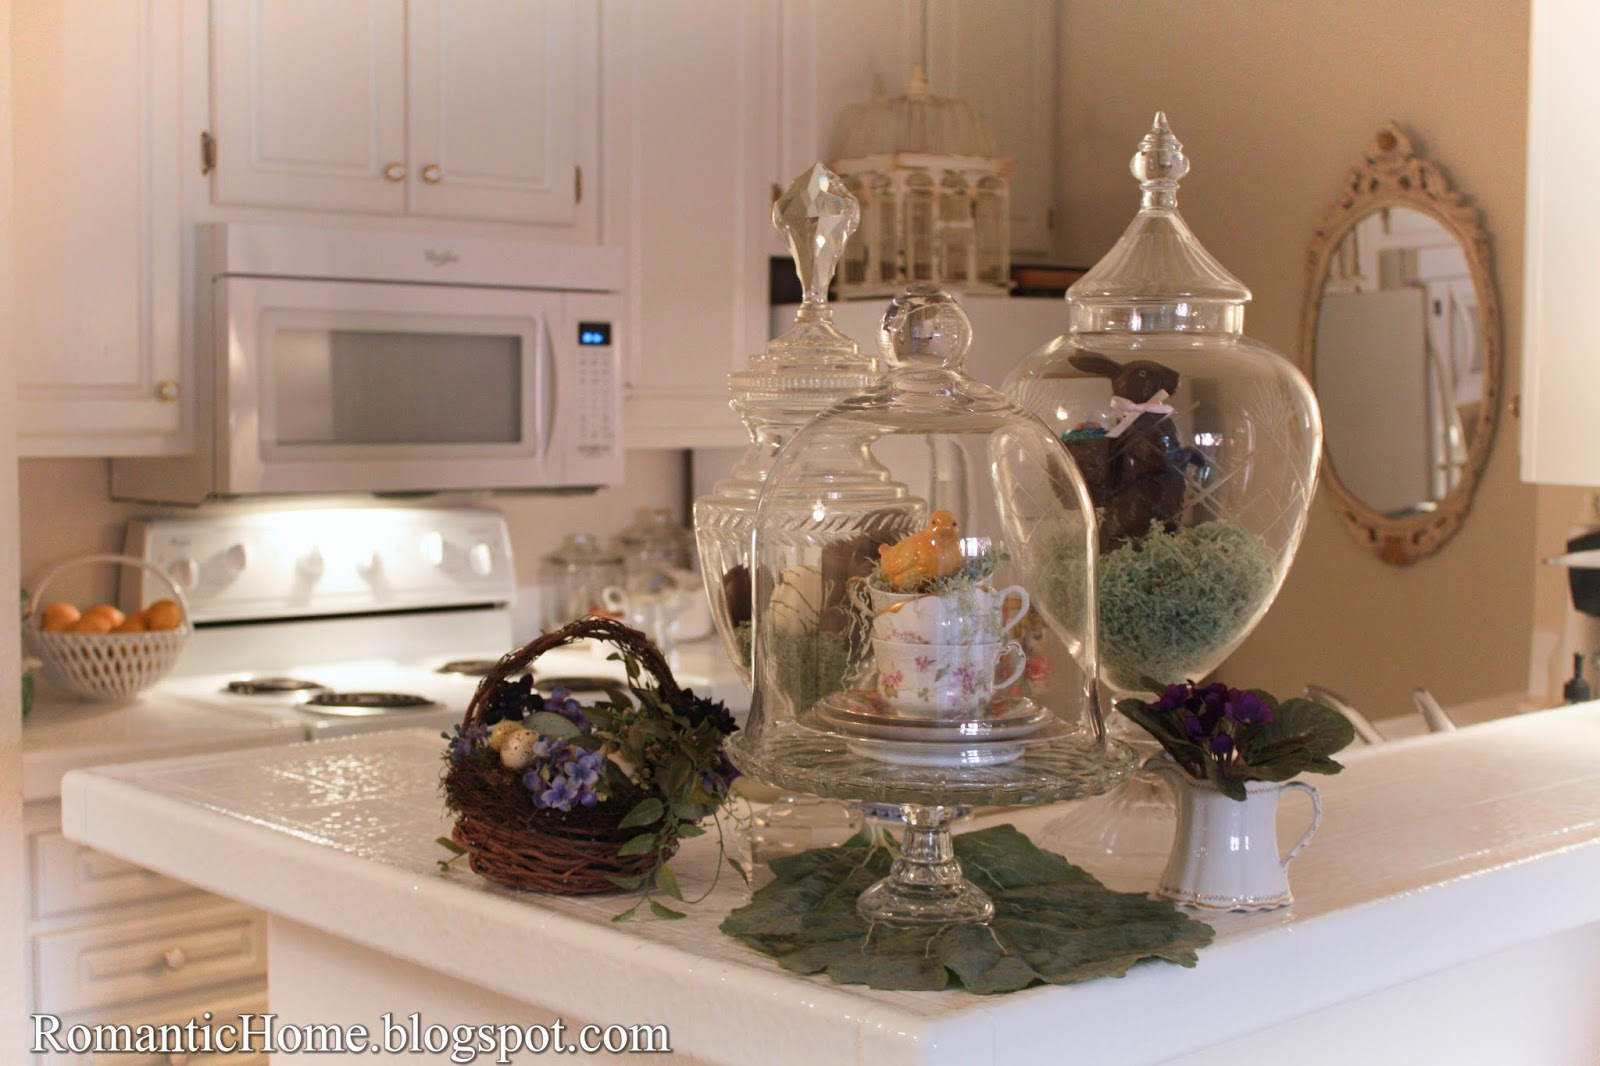 My romantic home a little kitchen easter decor show and for Home decor centerpieces